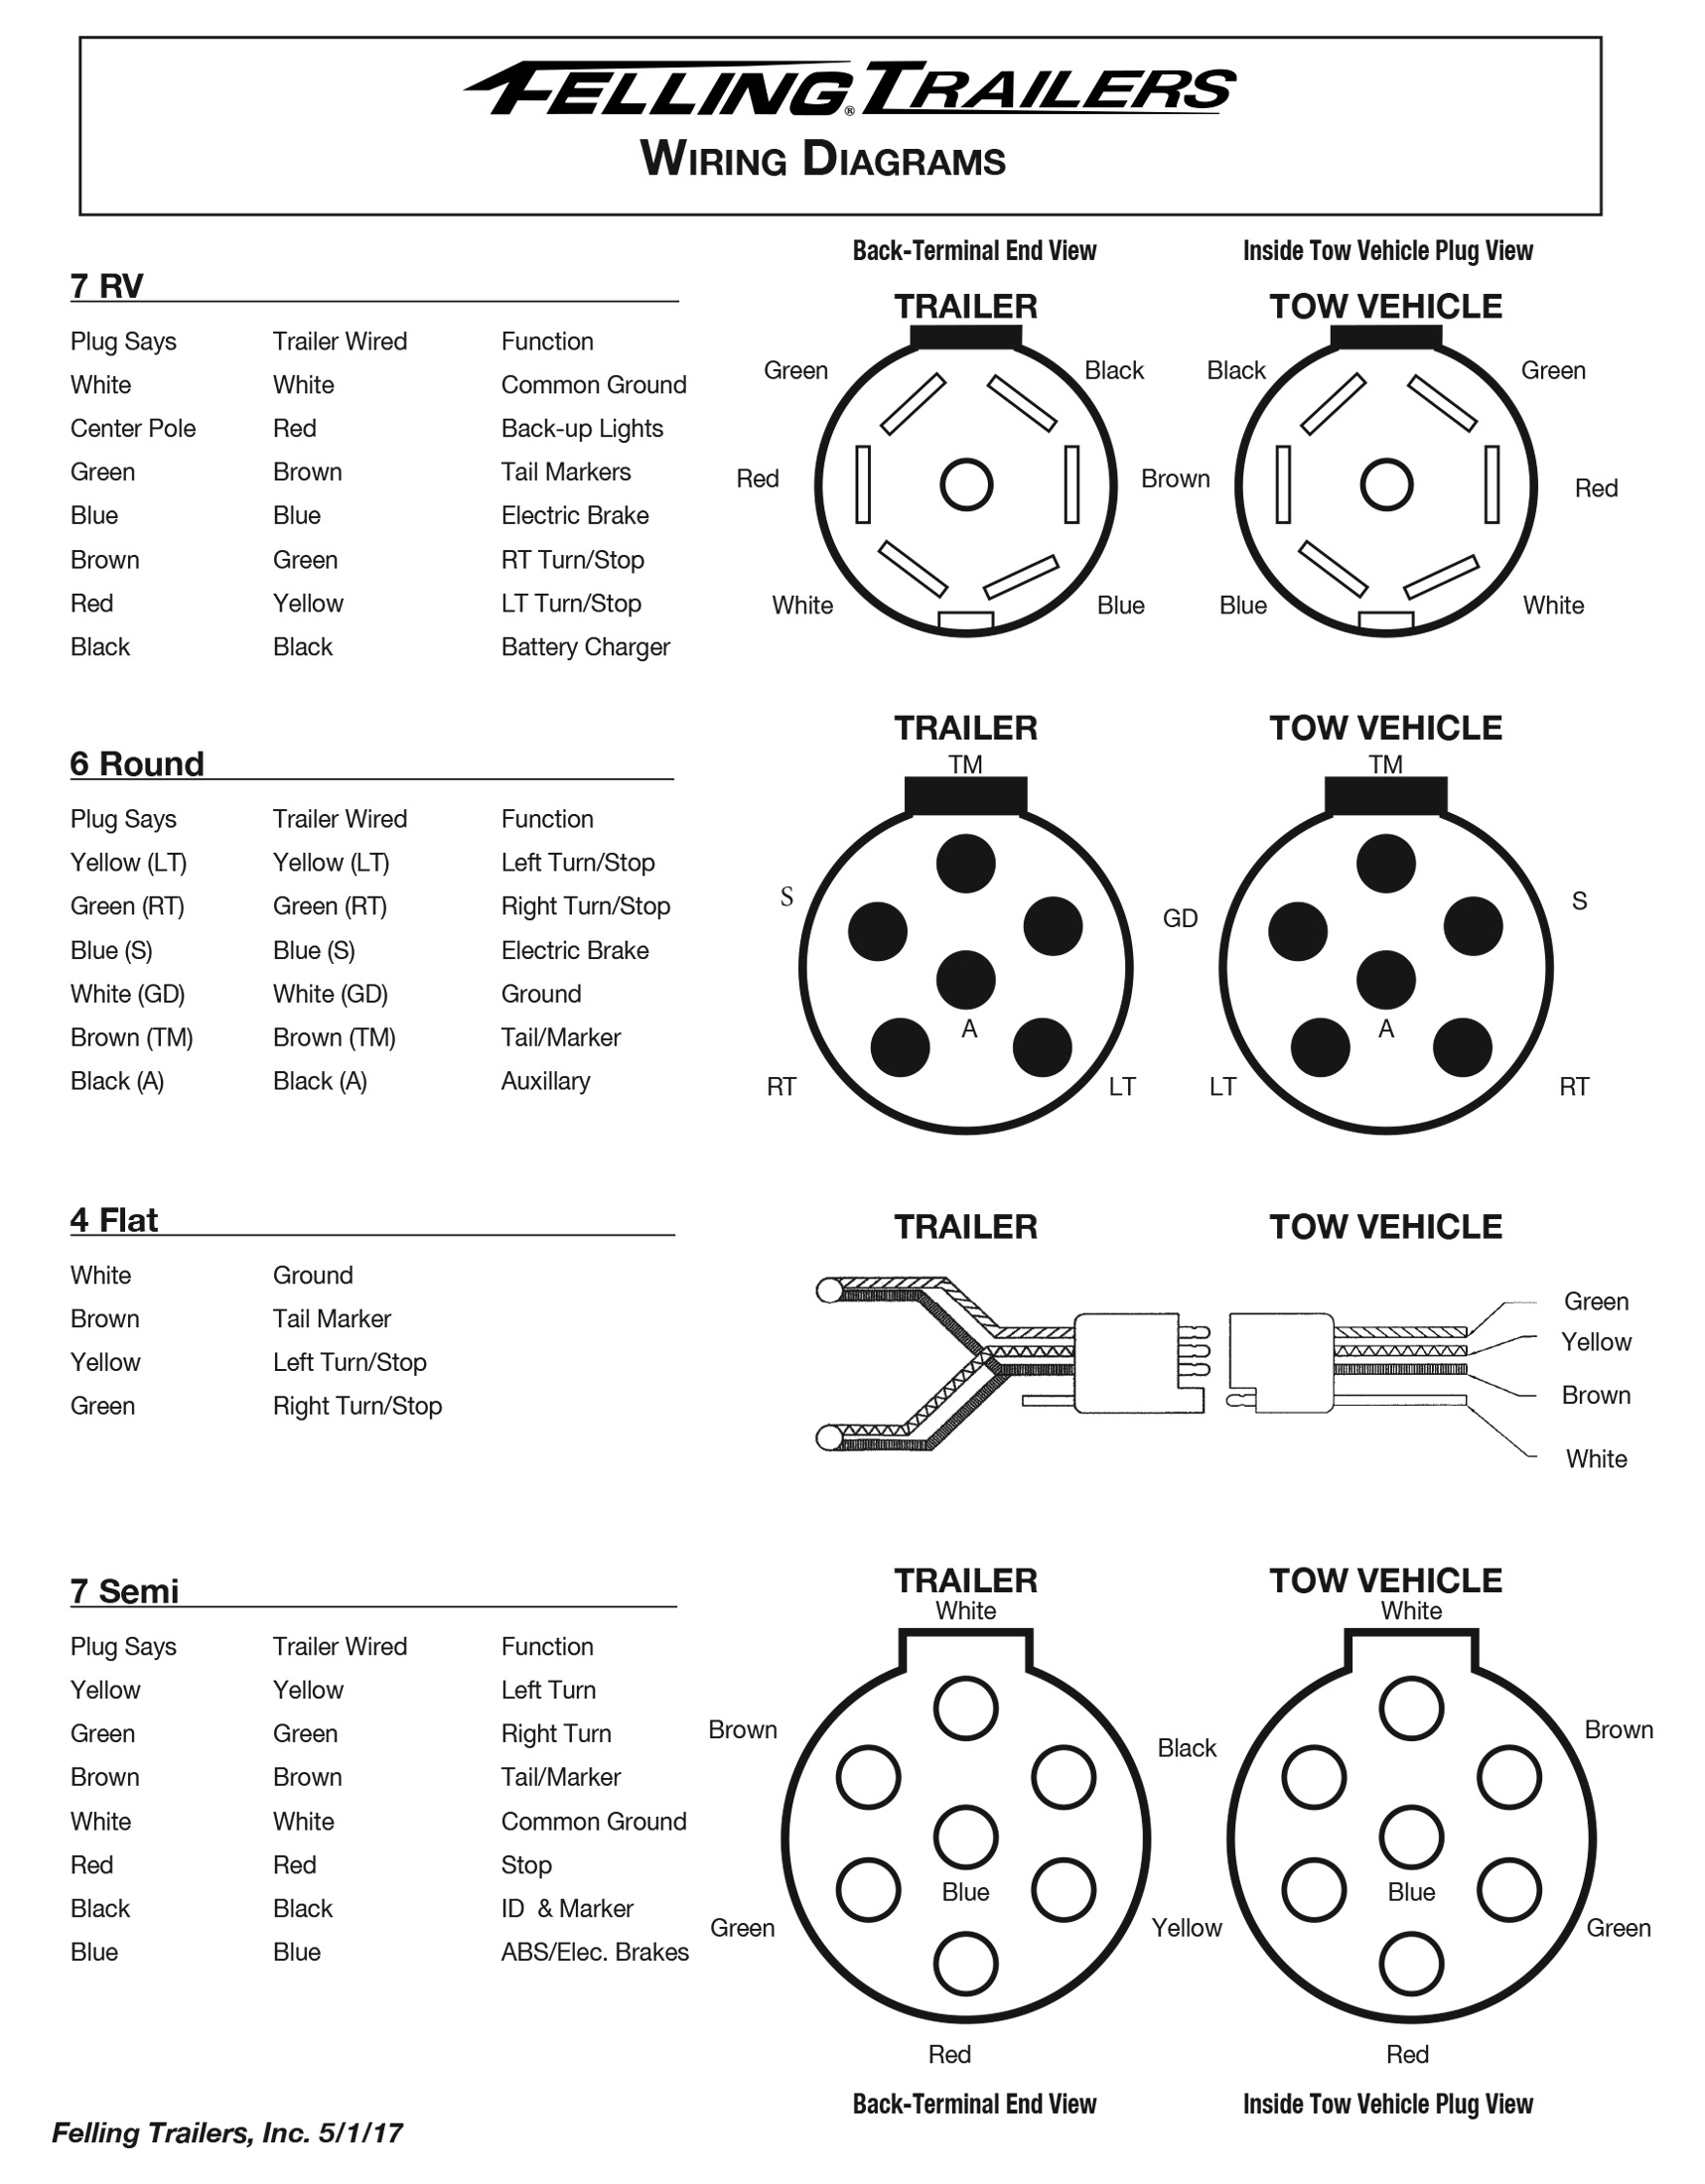 Service- Felling Trailers Wiring Diagrams, Wheel Toque - 4 Flat Trailer Wiring Diagram